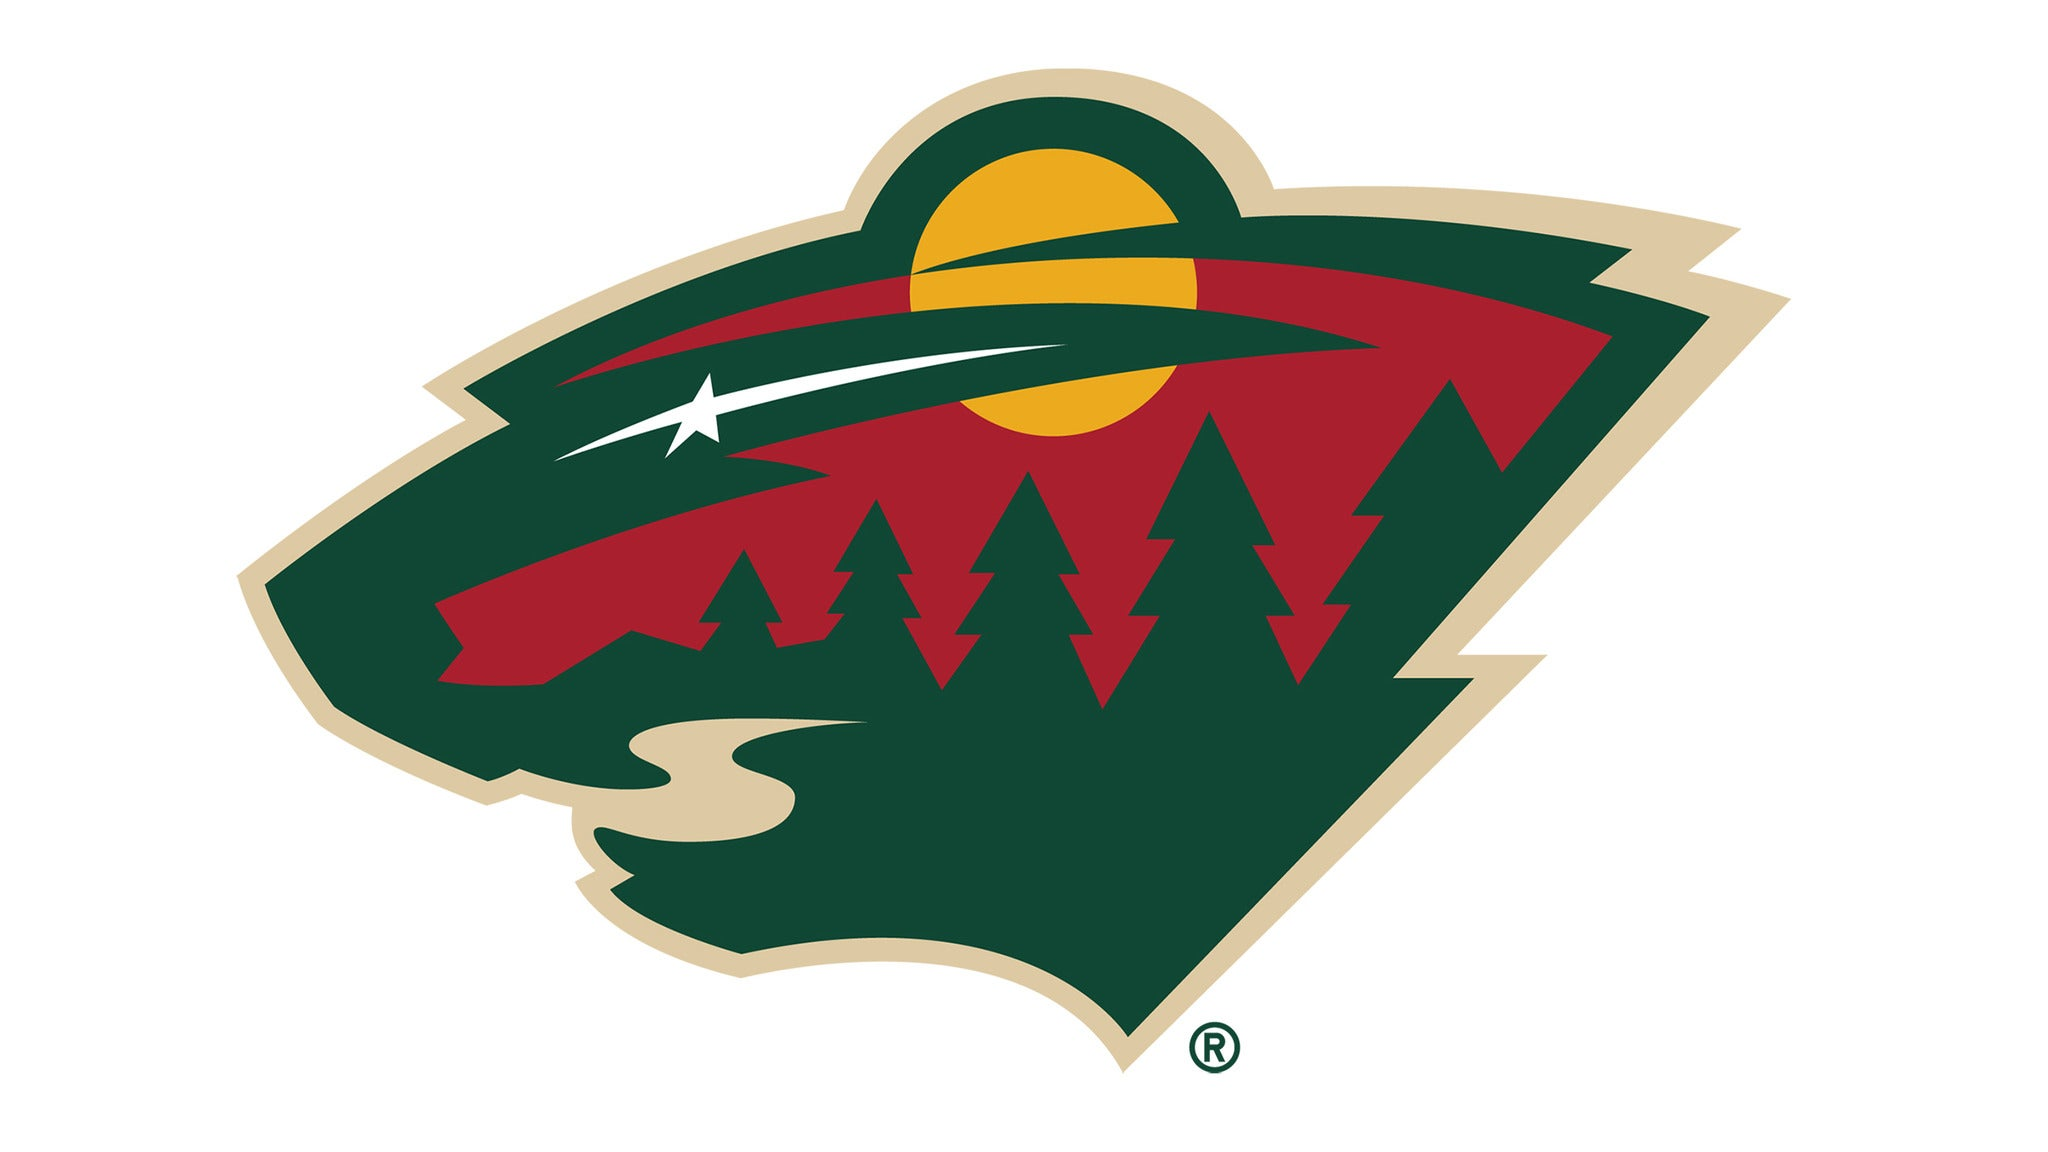 Minnesota Wild vs. Arizona Coyotes